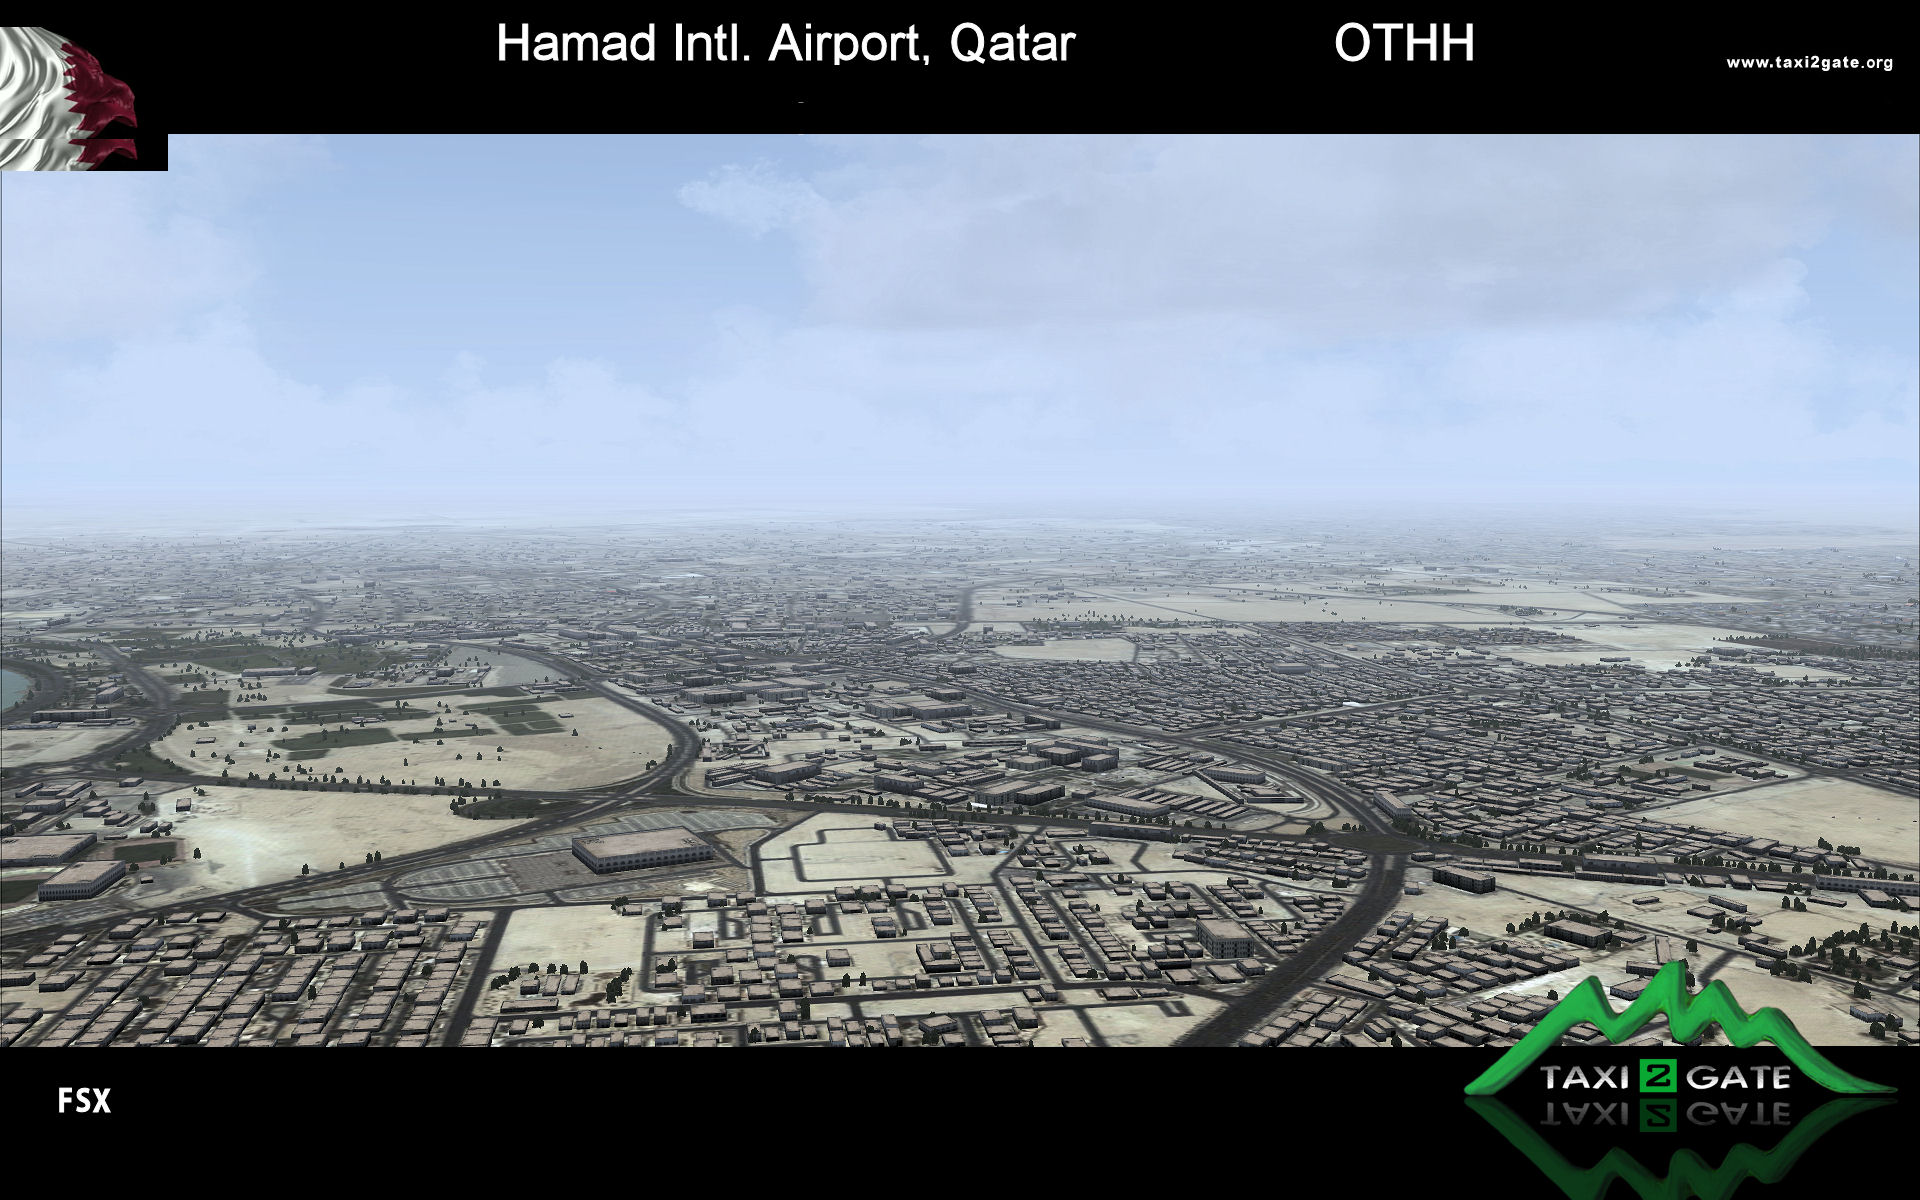 TAXI2GATE - HAMAD INTL AIRPORT FSX P3D